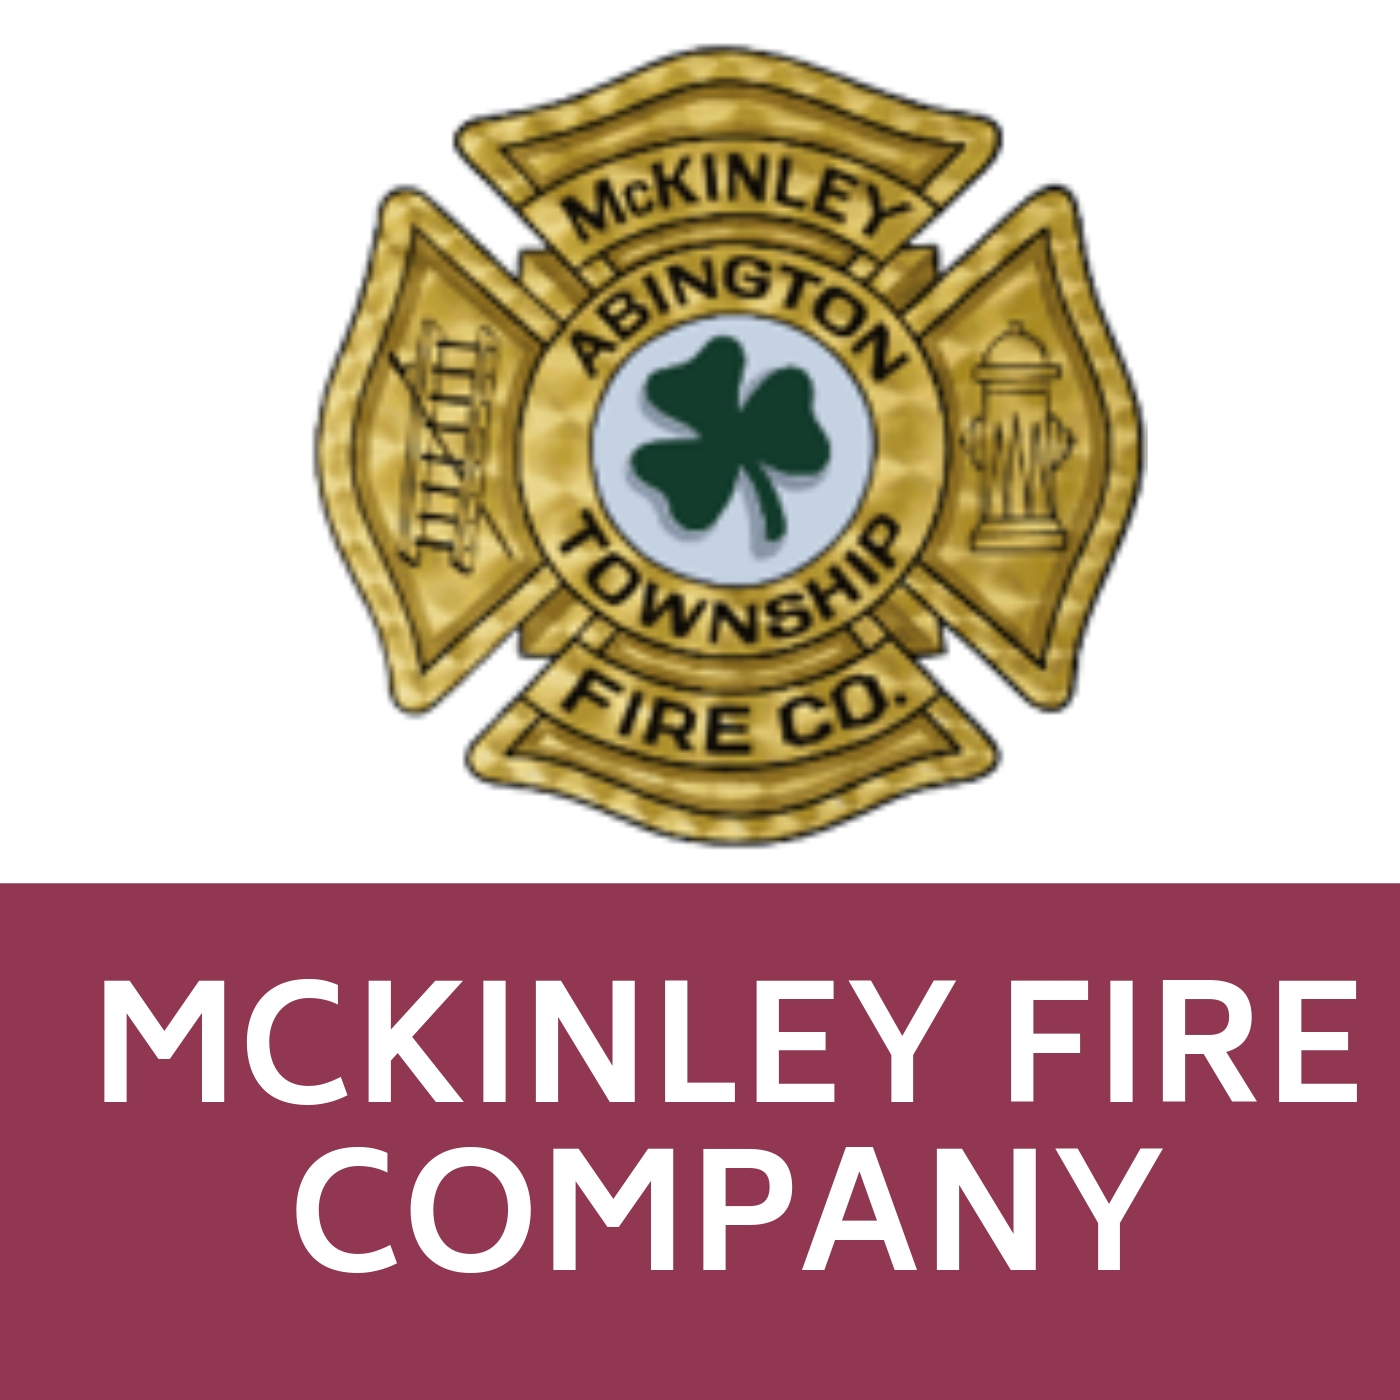 McKinley Fire Company Symbol that links to https://mckinleyfire.org/.